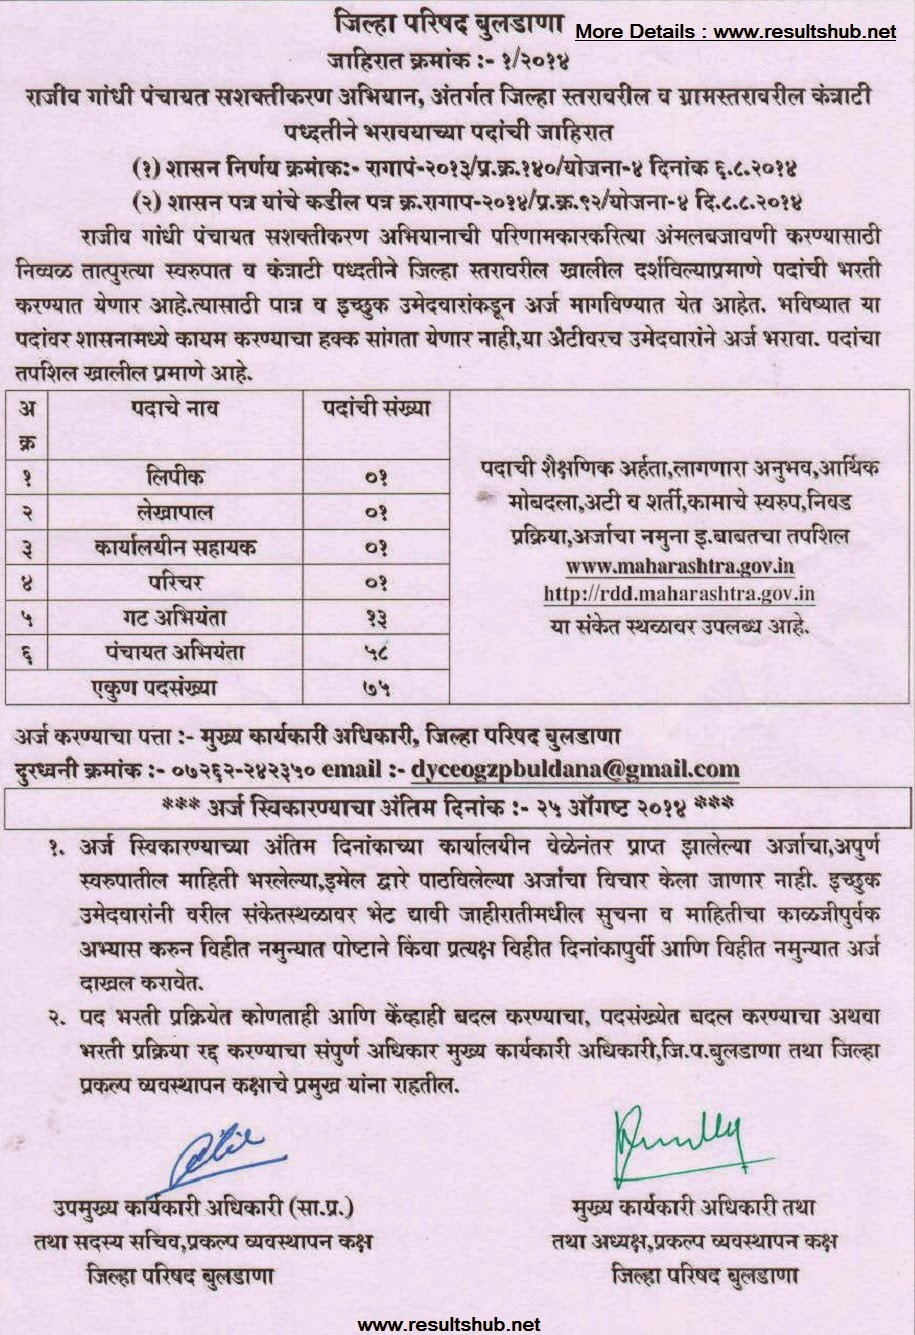 Zilla Parishad Buldhana Recruitment 2014